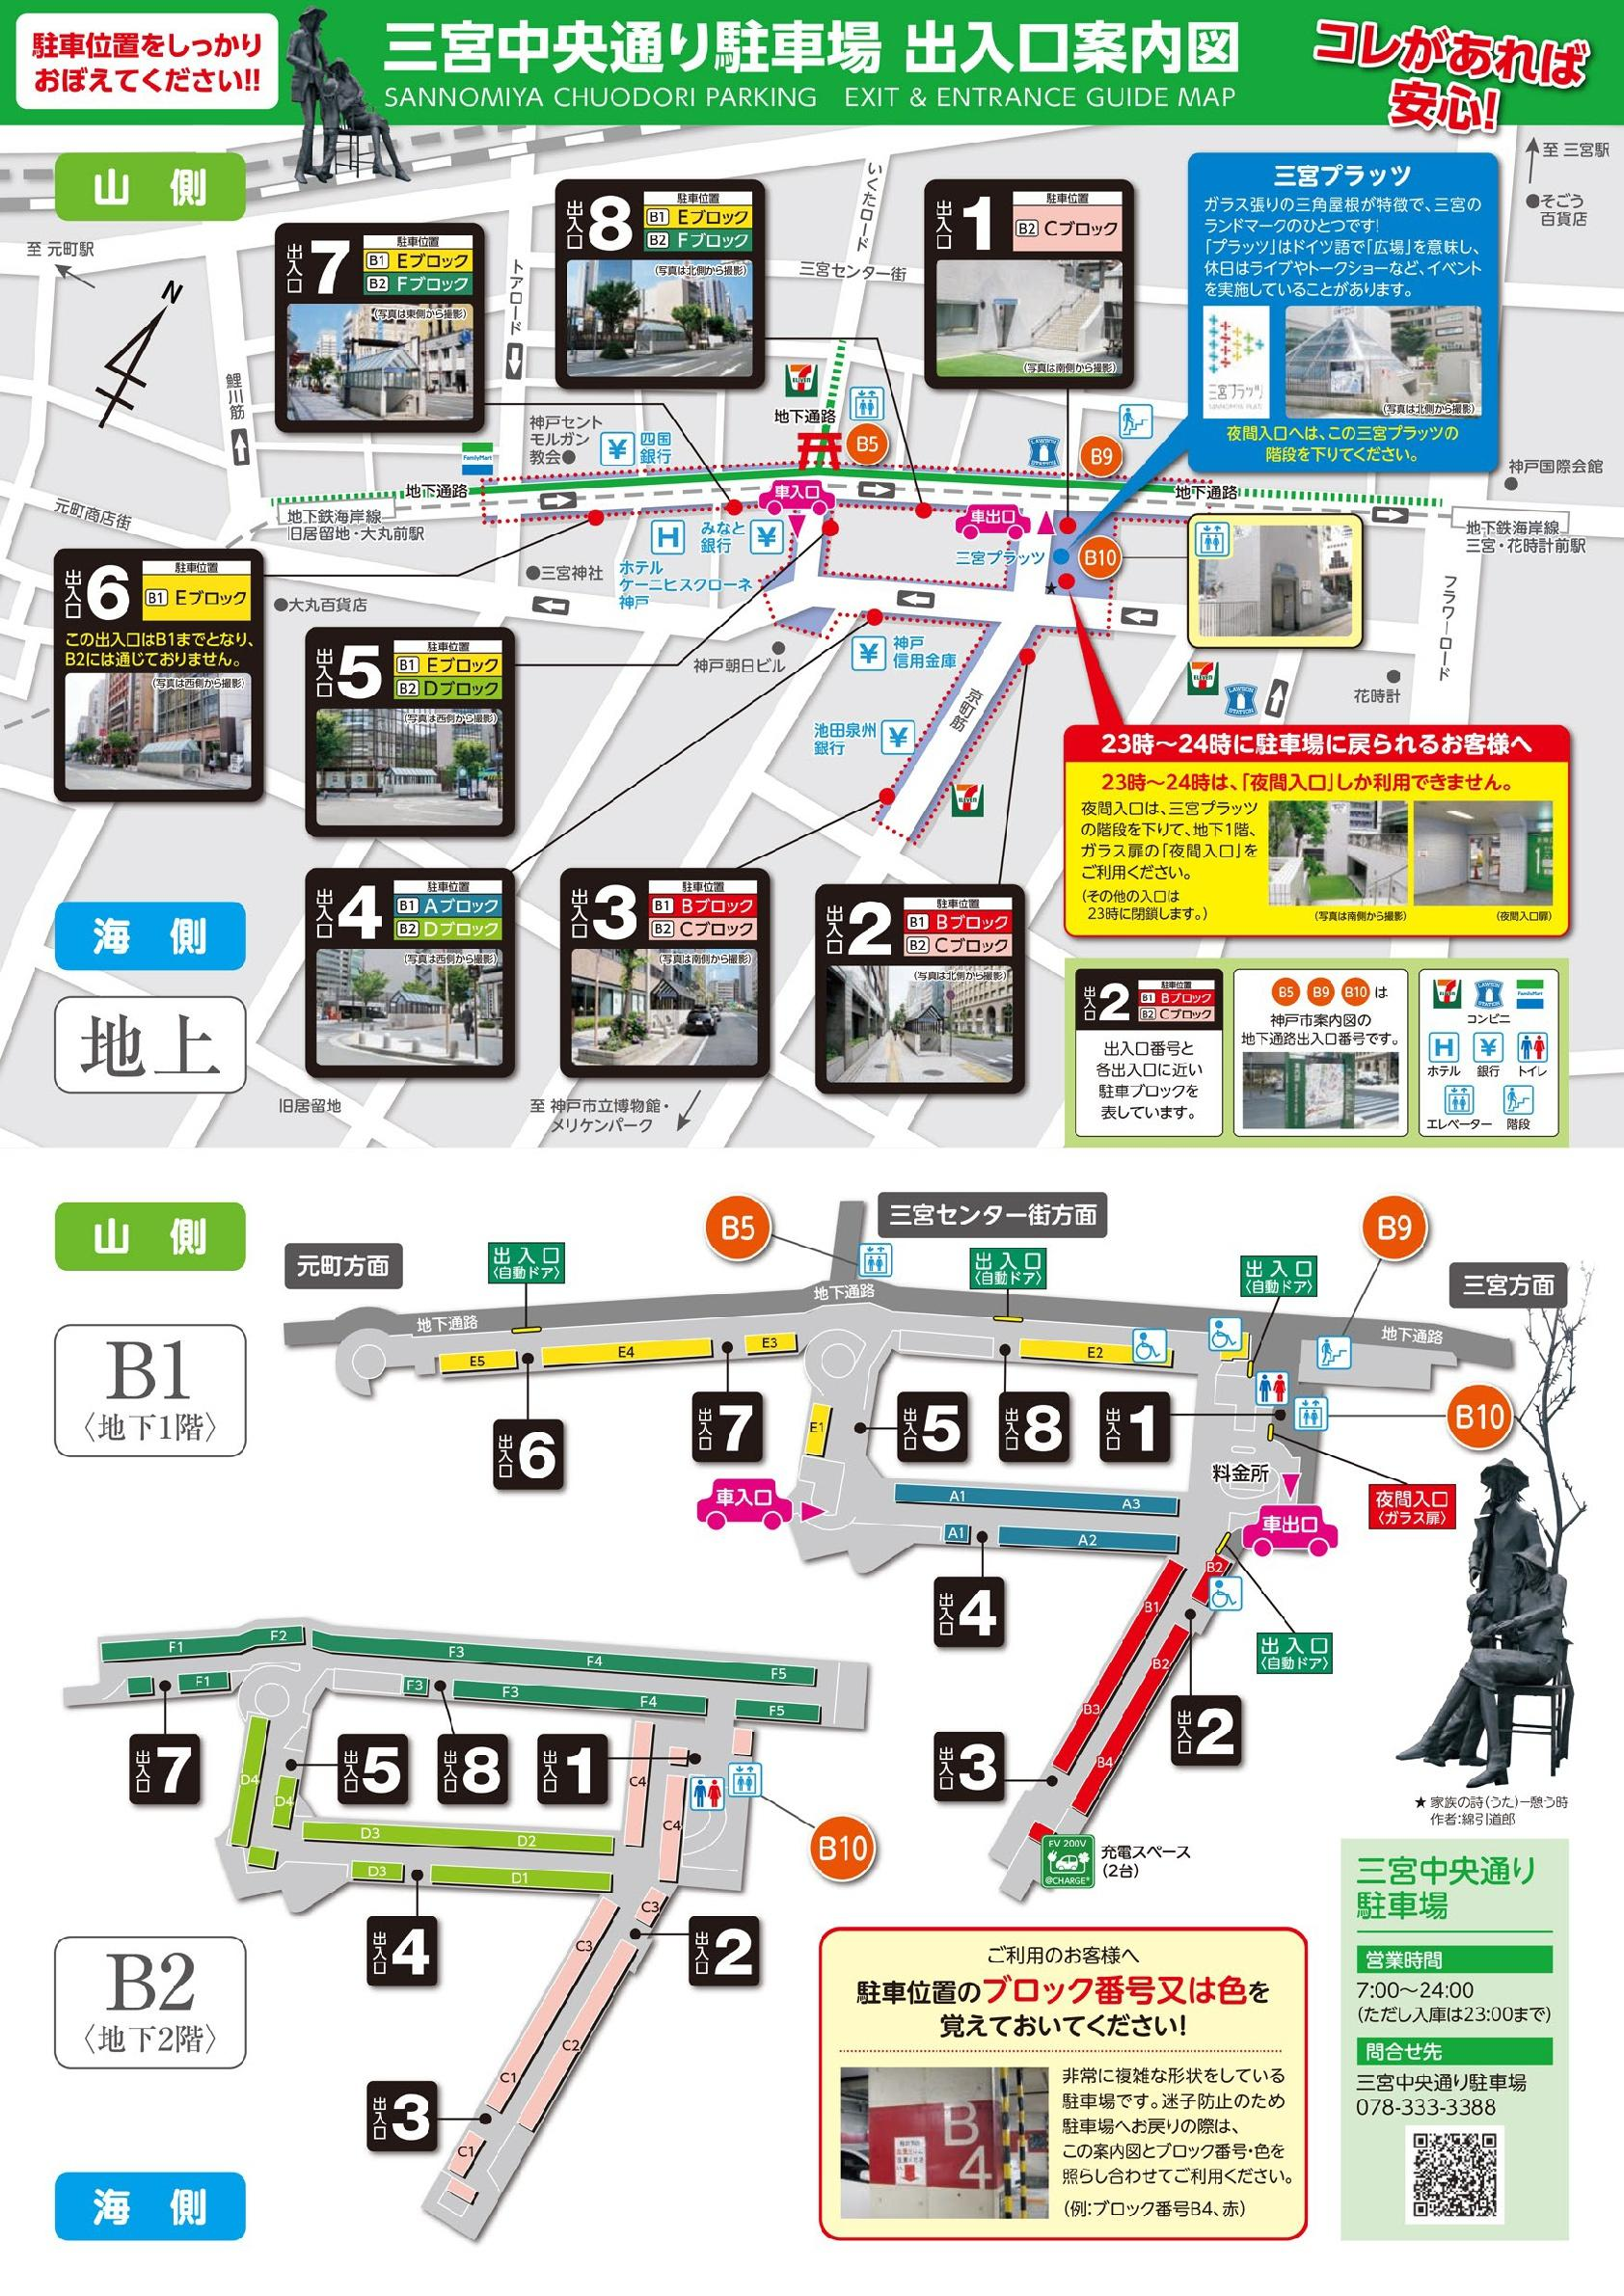 sannomiya_chuodori_parking_guidemap-001.jpg